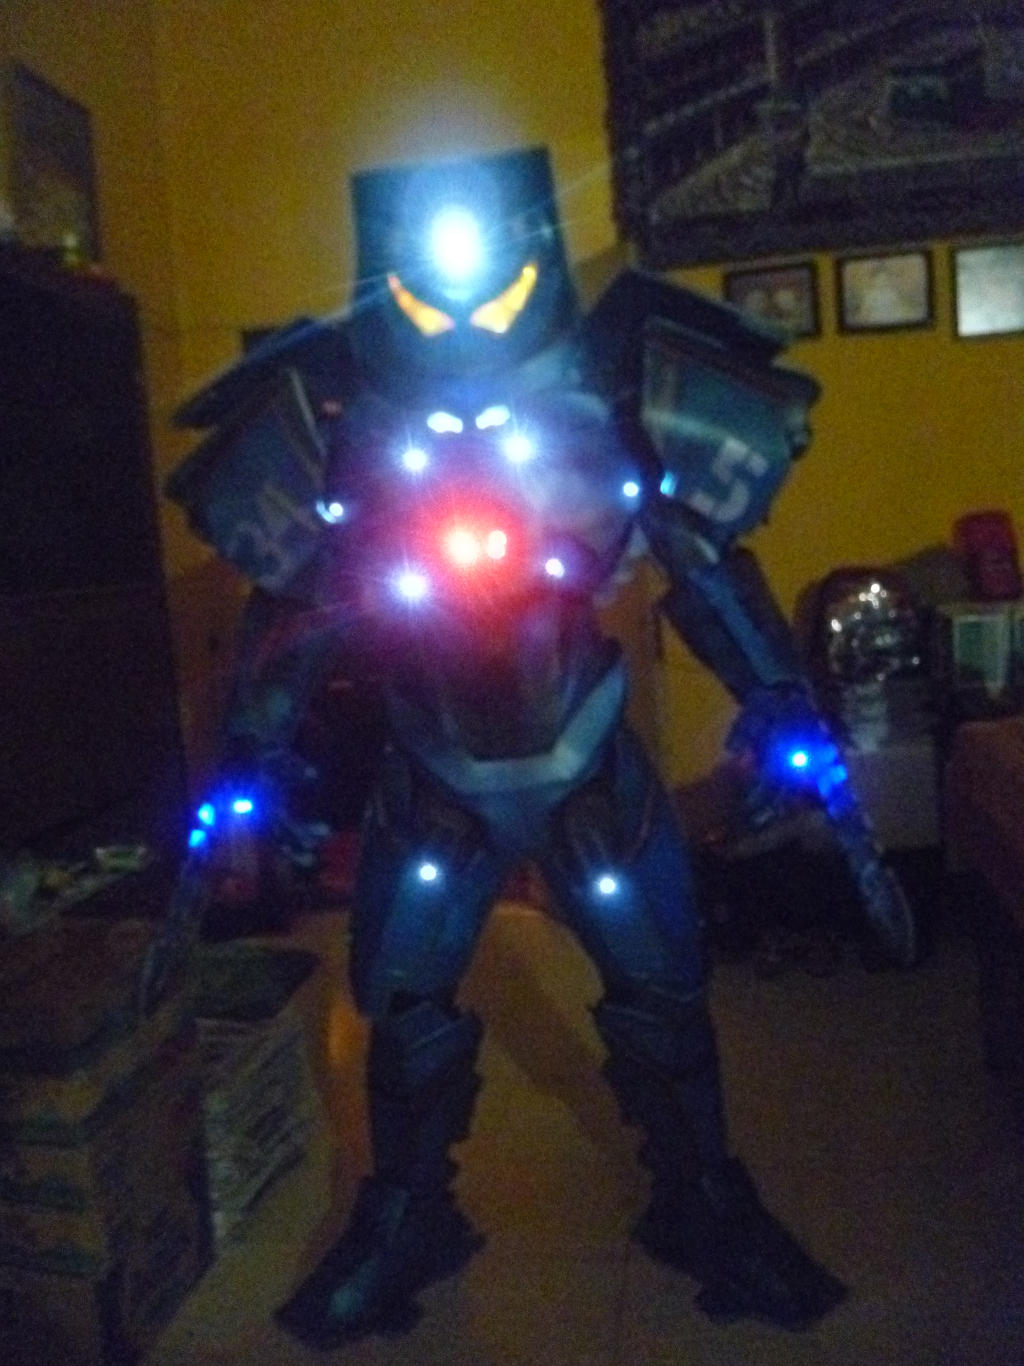 gipsy danger (pacific rim) light test by actstudio65148